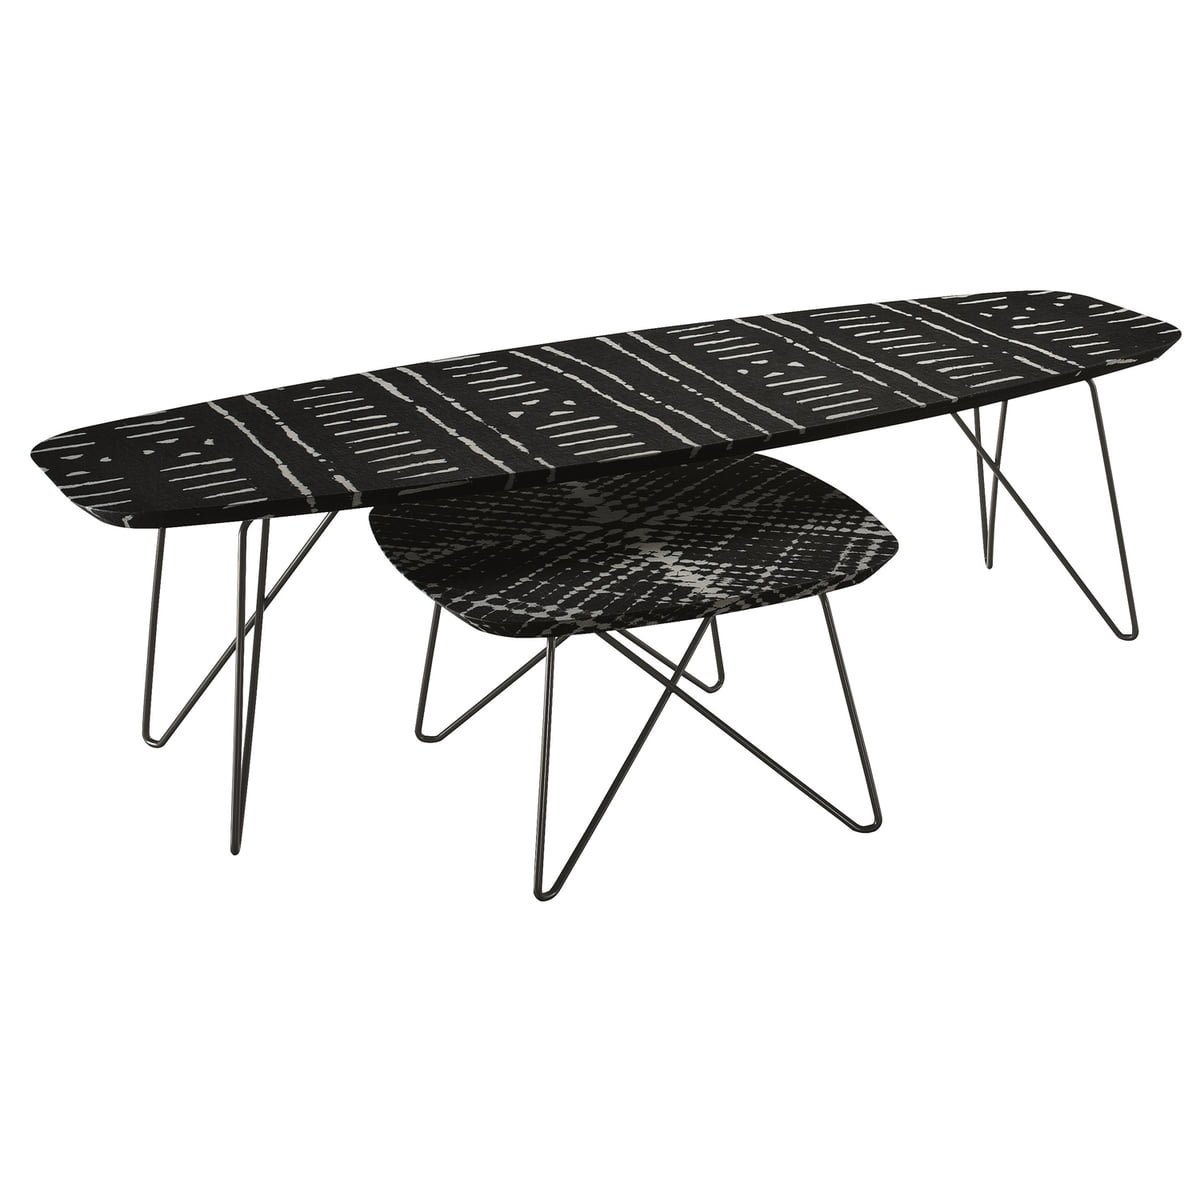 Zanotta ink couch table im shop zanotta ink side table 60 raute 160 h45 streif black greentooth Gallery